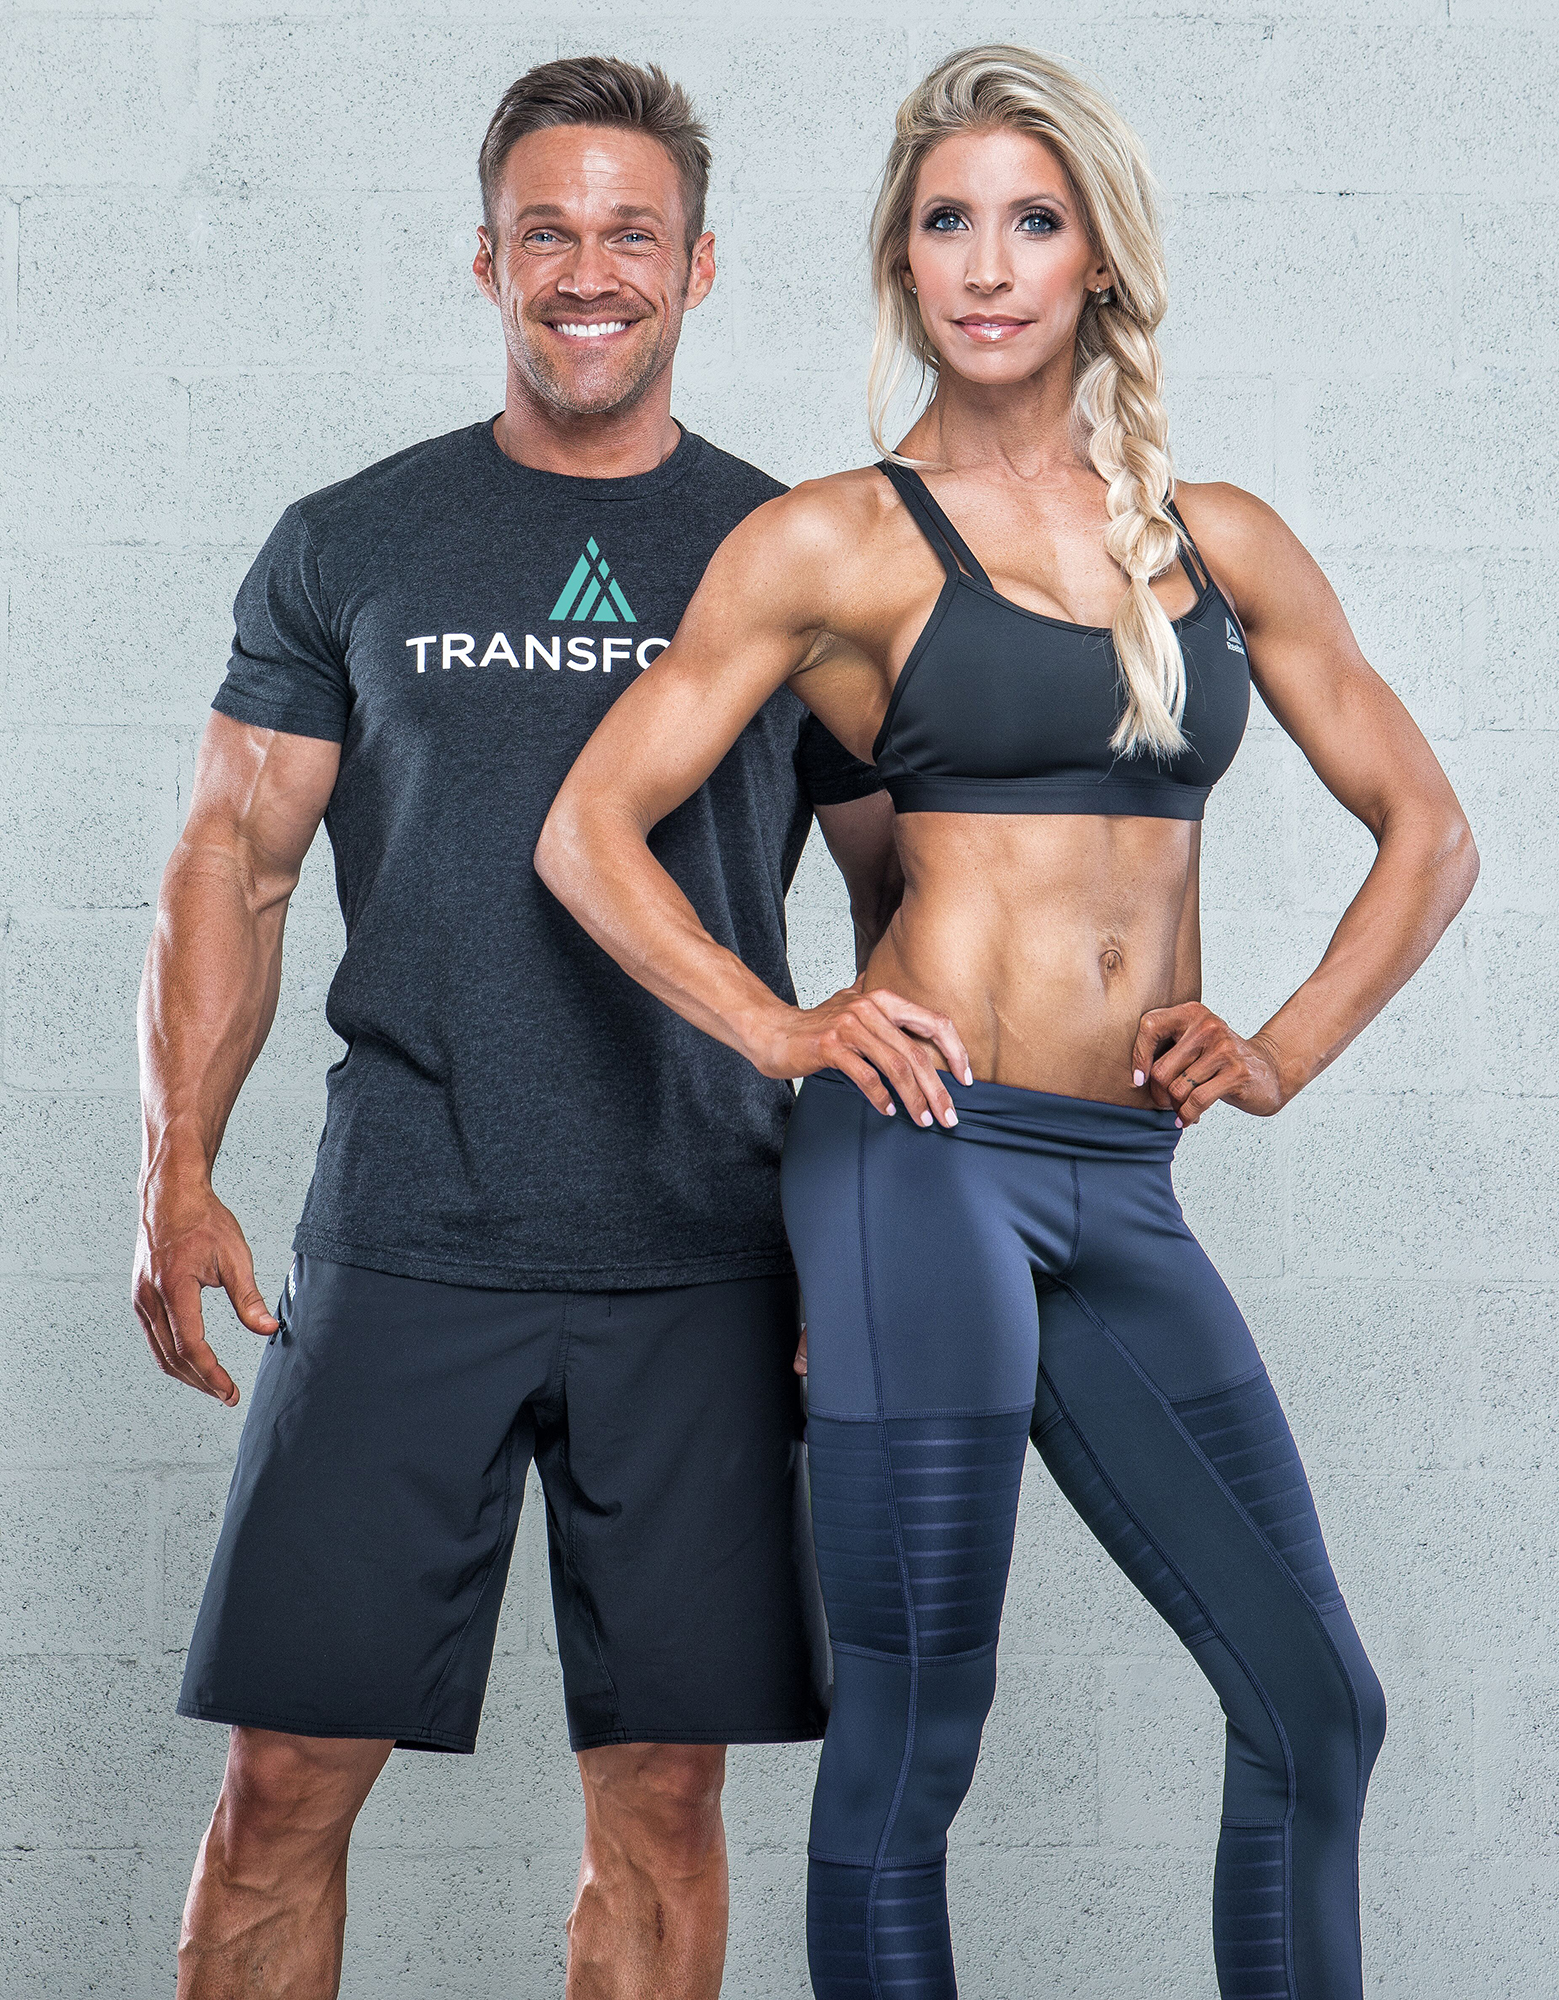 transform-app - Celebrity trainers Chris and Heidi Powell's updated app now has macro-tracking capability and 1,000 personalized workouts to get your best body ever. ($15 a month, app store)